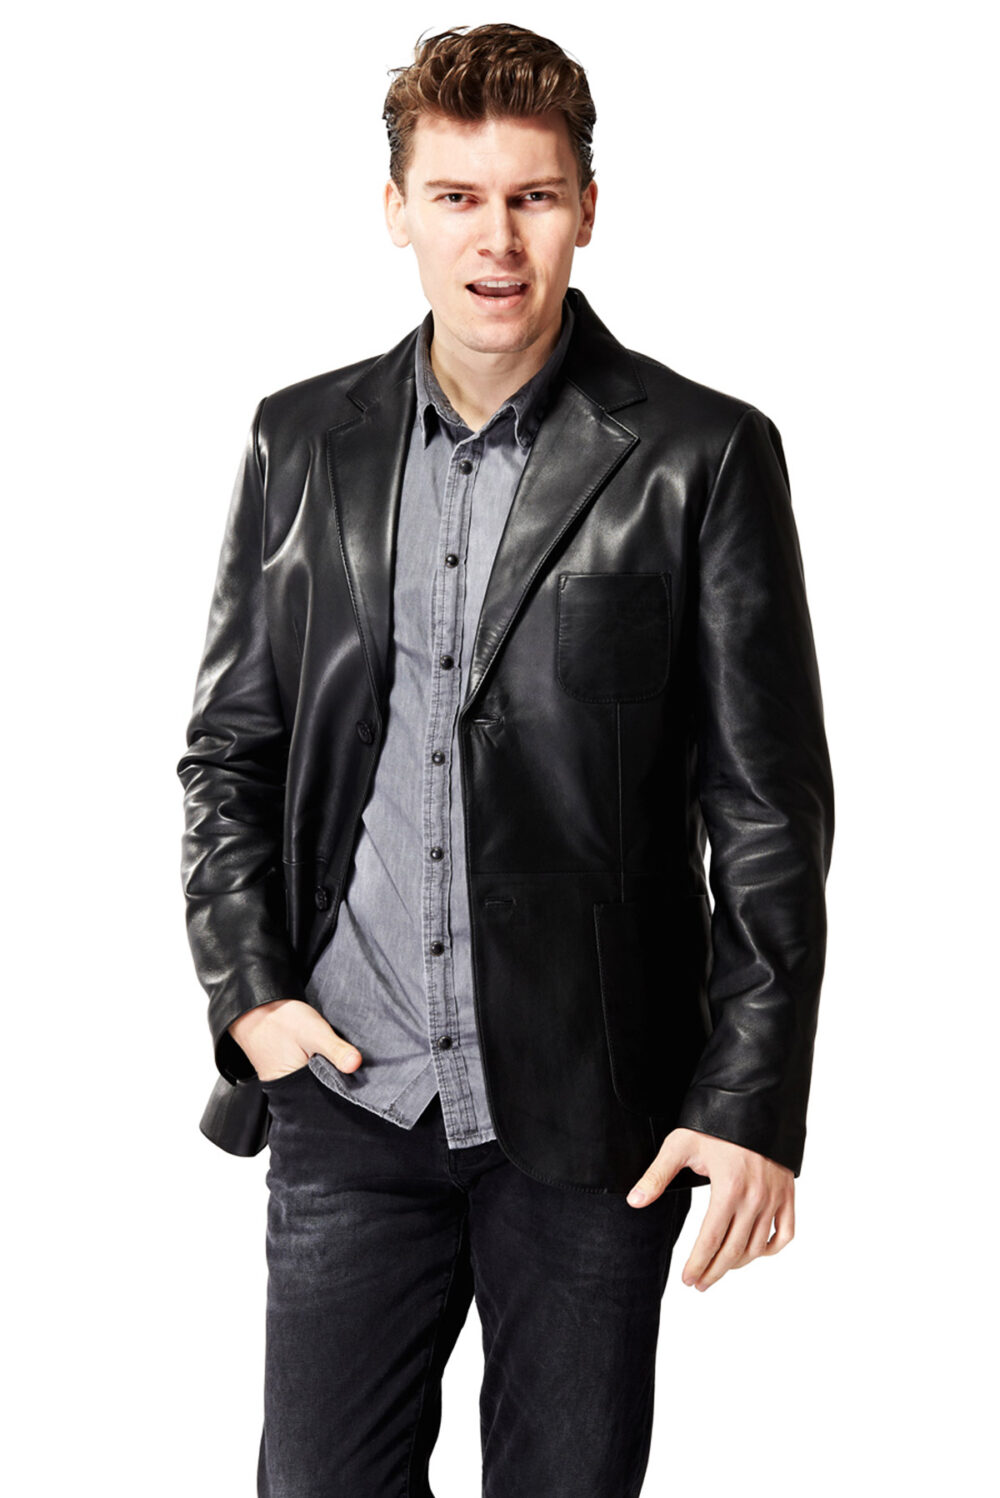 red leather jacket outfit men